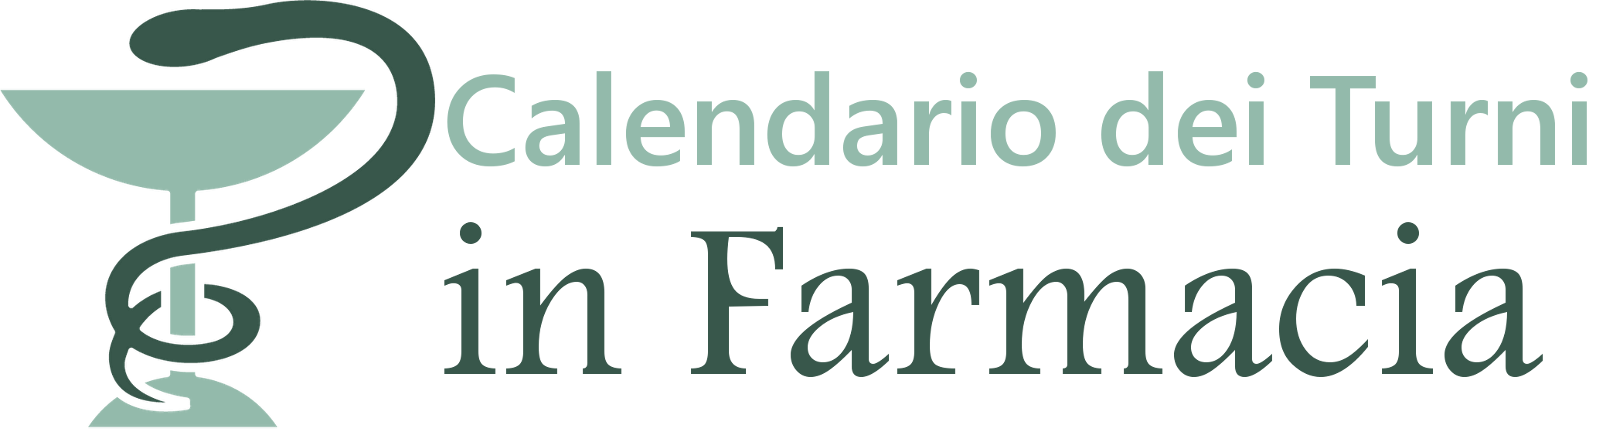 calendario-turni-farmacia